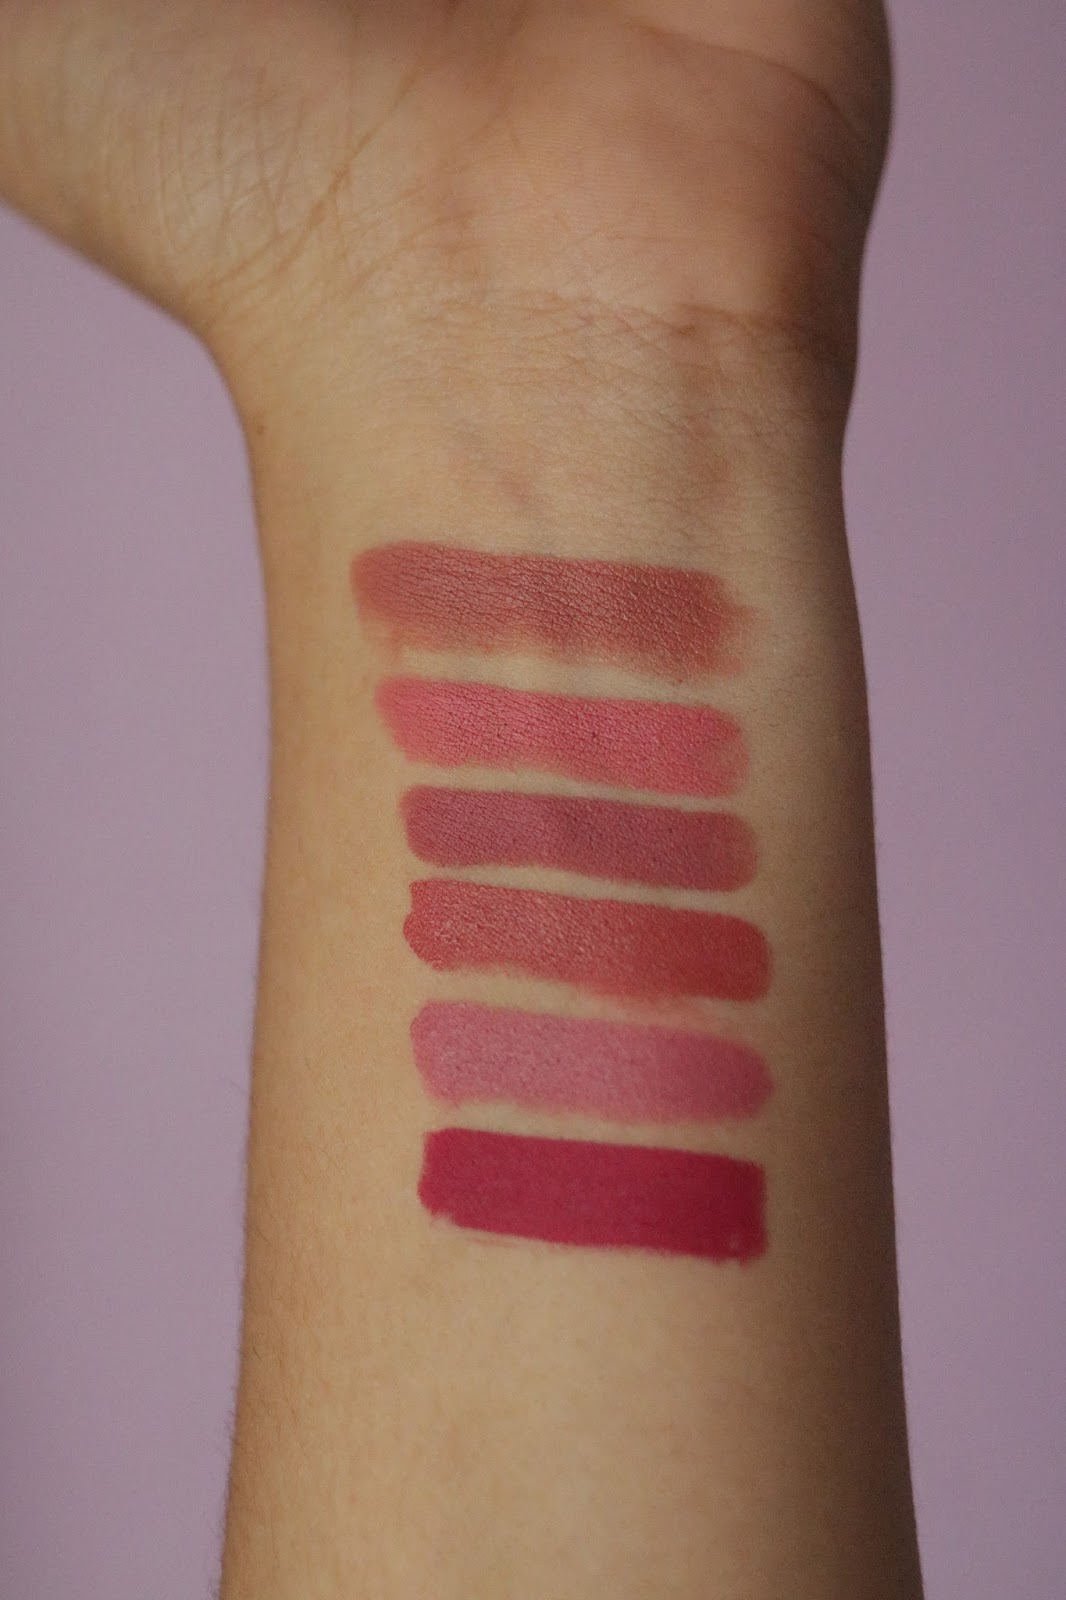 colourpop , OVER BRUNCH ,  lippie stix , revue, avis swatch , mirror mirror , faded , cami , payton , rooftop , parker , avis , revue , blog beauté , paris , beauté, rouges à lèvres ,rosemademoiselle , rose mademoiselle ,